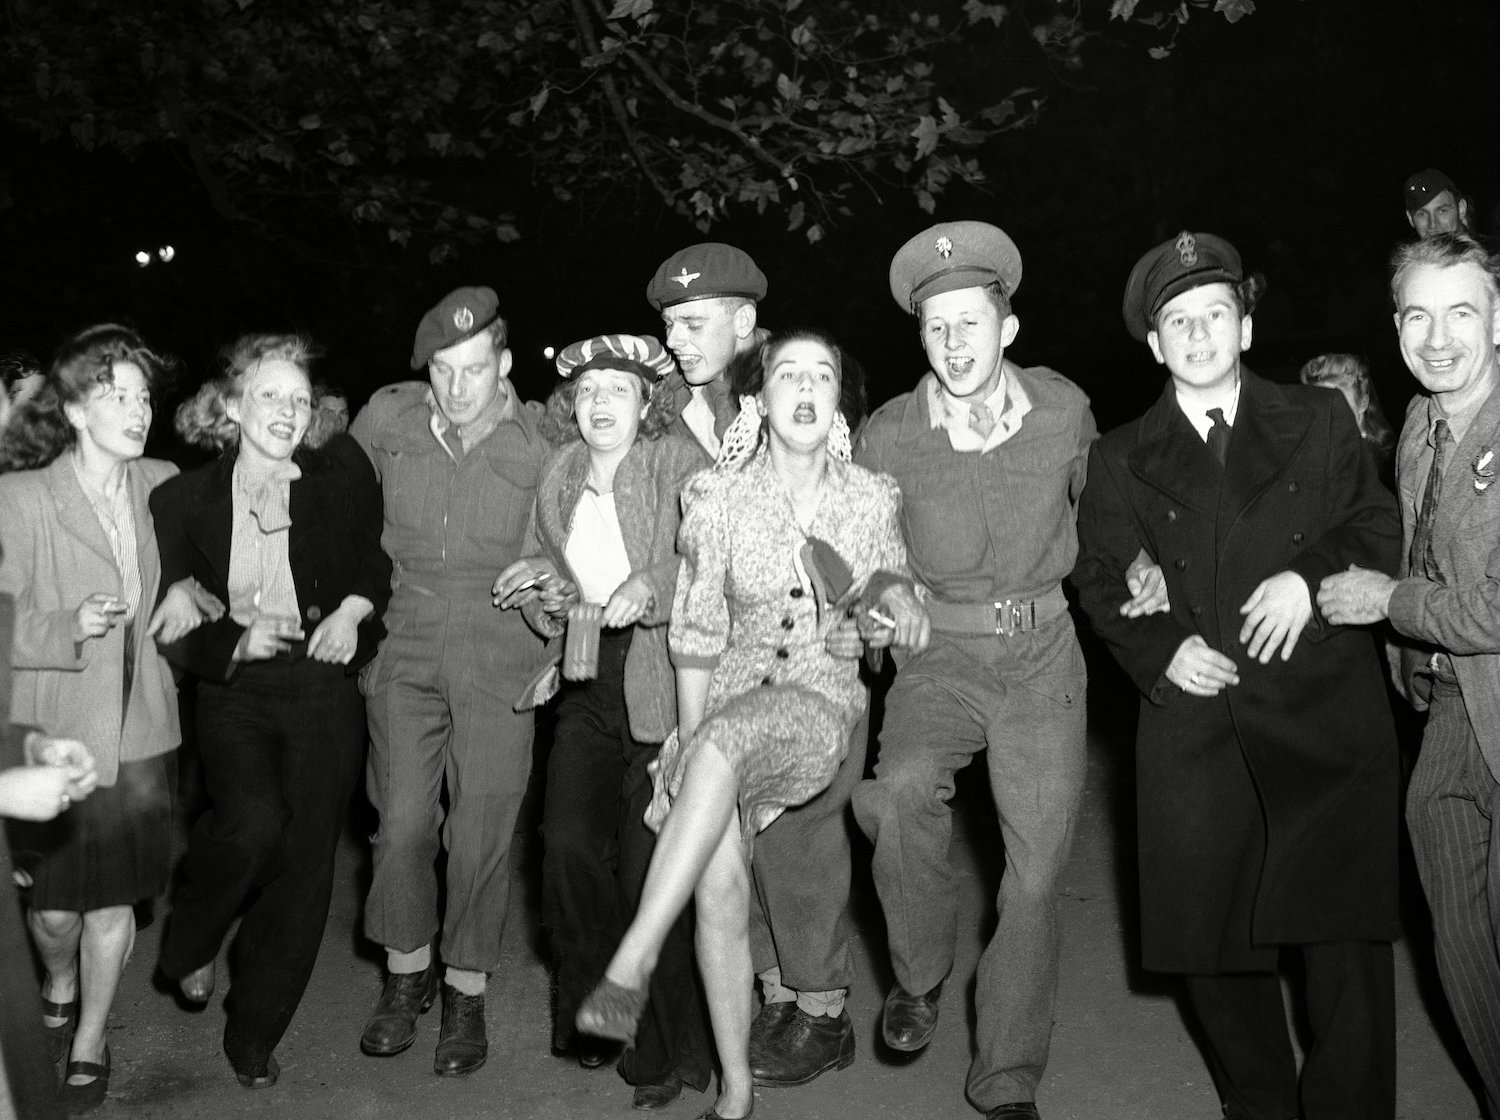 A troupe of happy soldiers and civilians enjoy the old fashion knees up as they celebrated VJ Day in the early hours of, in Piccadilly Circus in London WWII London VJ Celebrations, London.15 Aug 1945